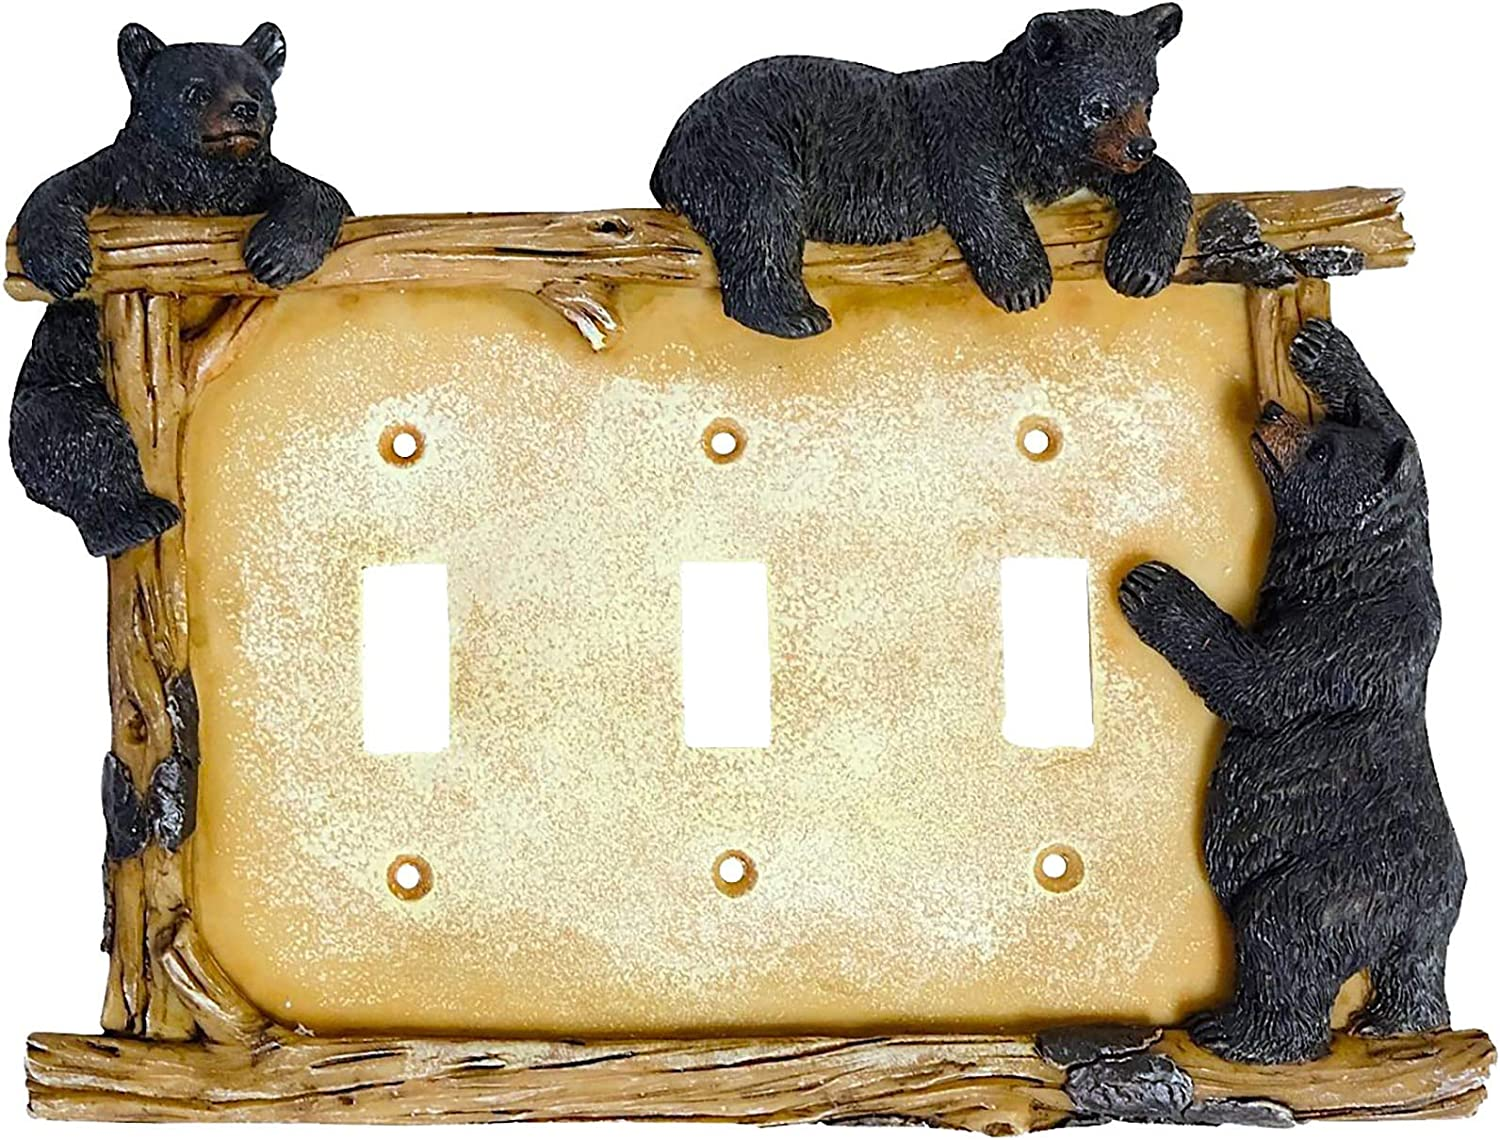 Black Bear on Log Triple Switch Cover Cabin Lodge Style Home Décor